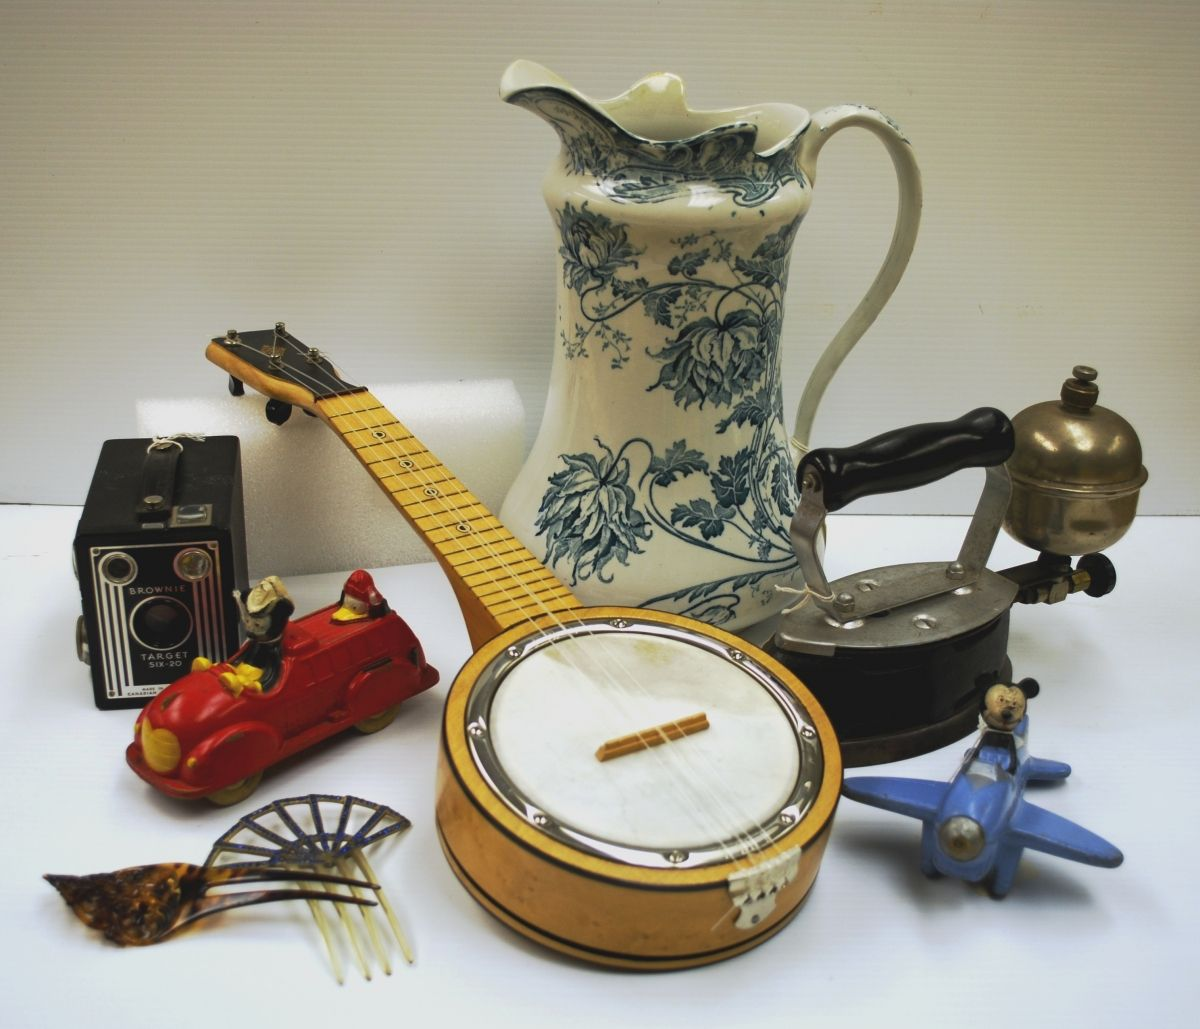 Picture of several artefacts from the Gloucester collection, including a banjo, a pitcher, and a toy airplane.